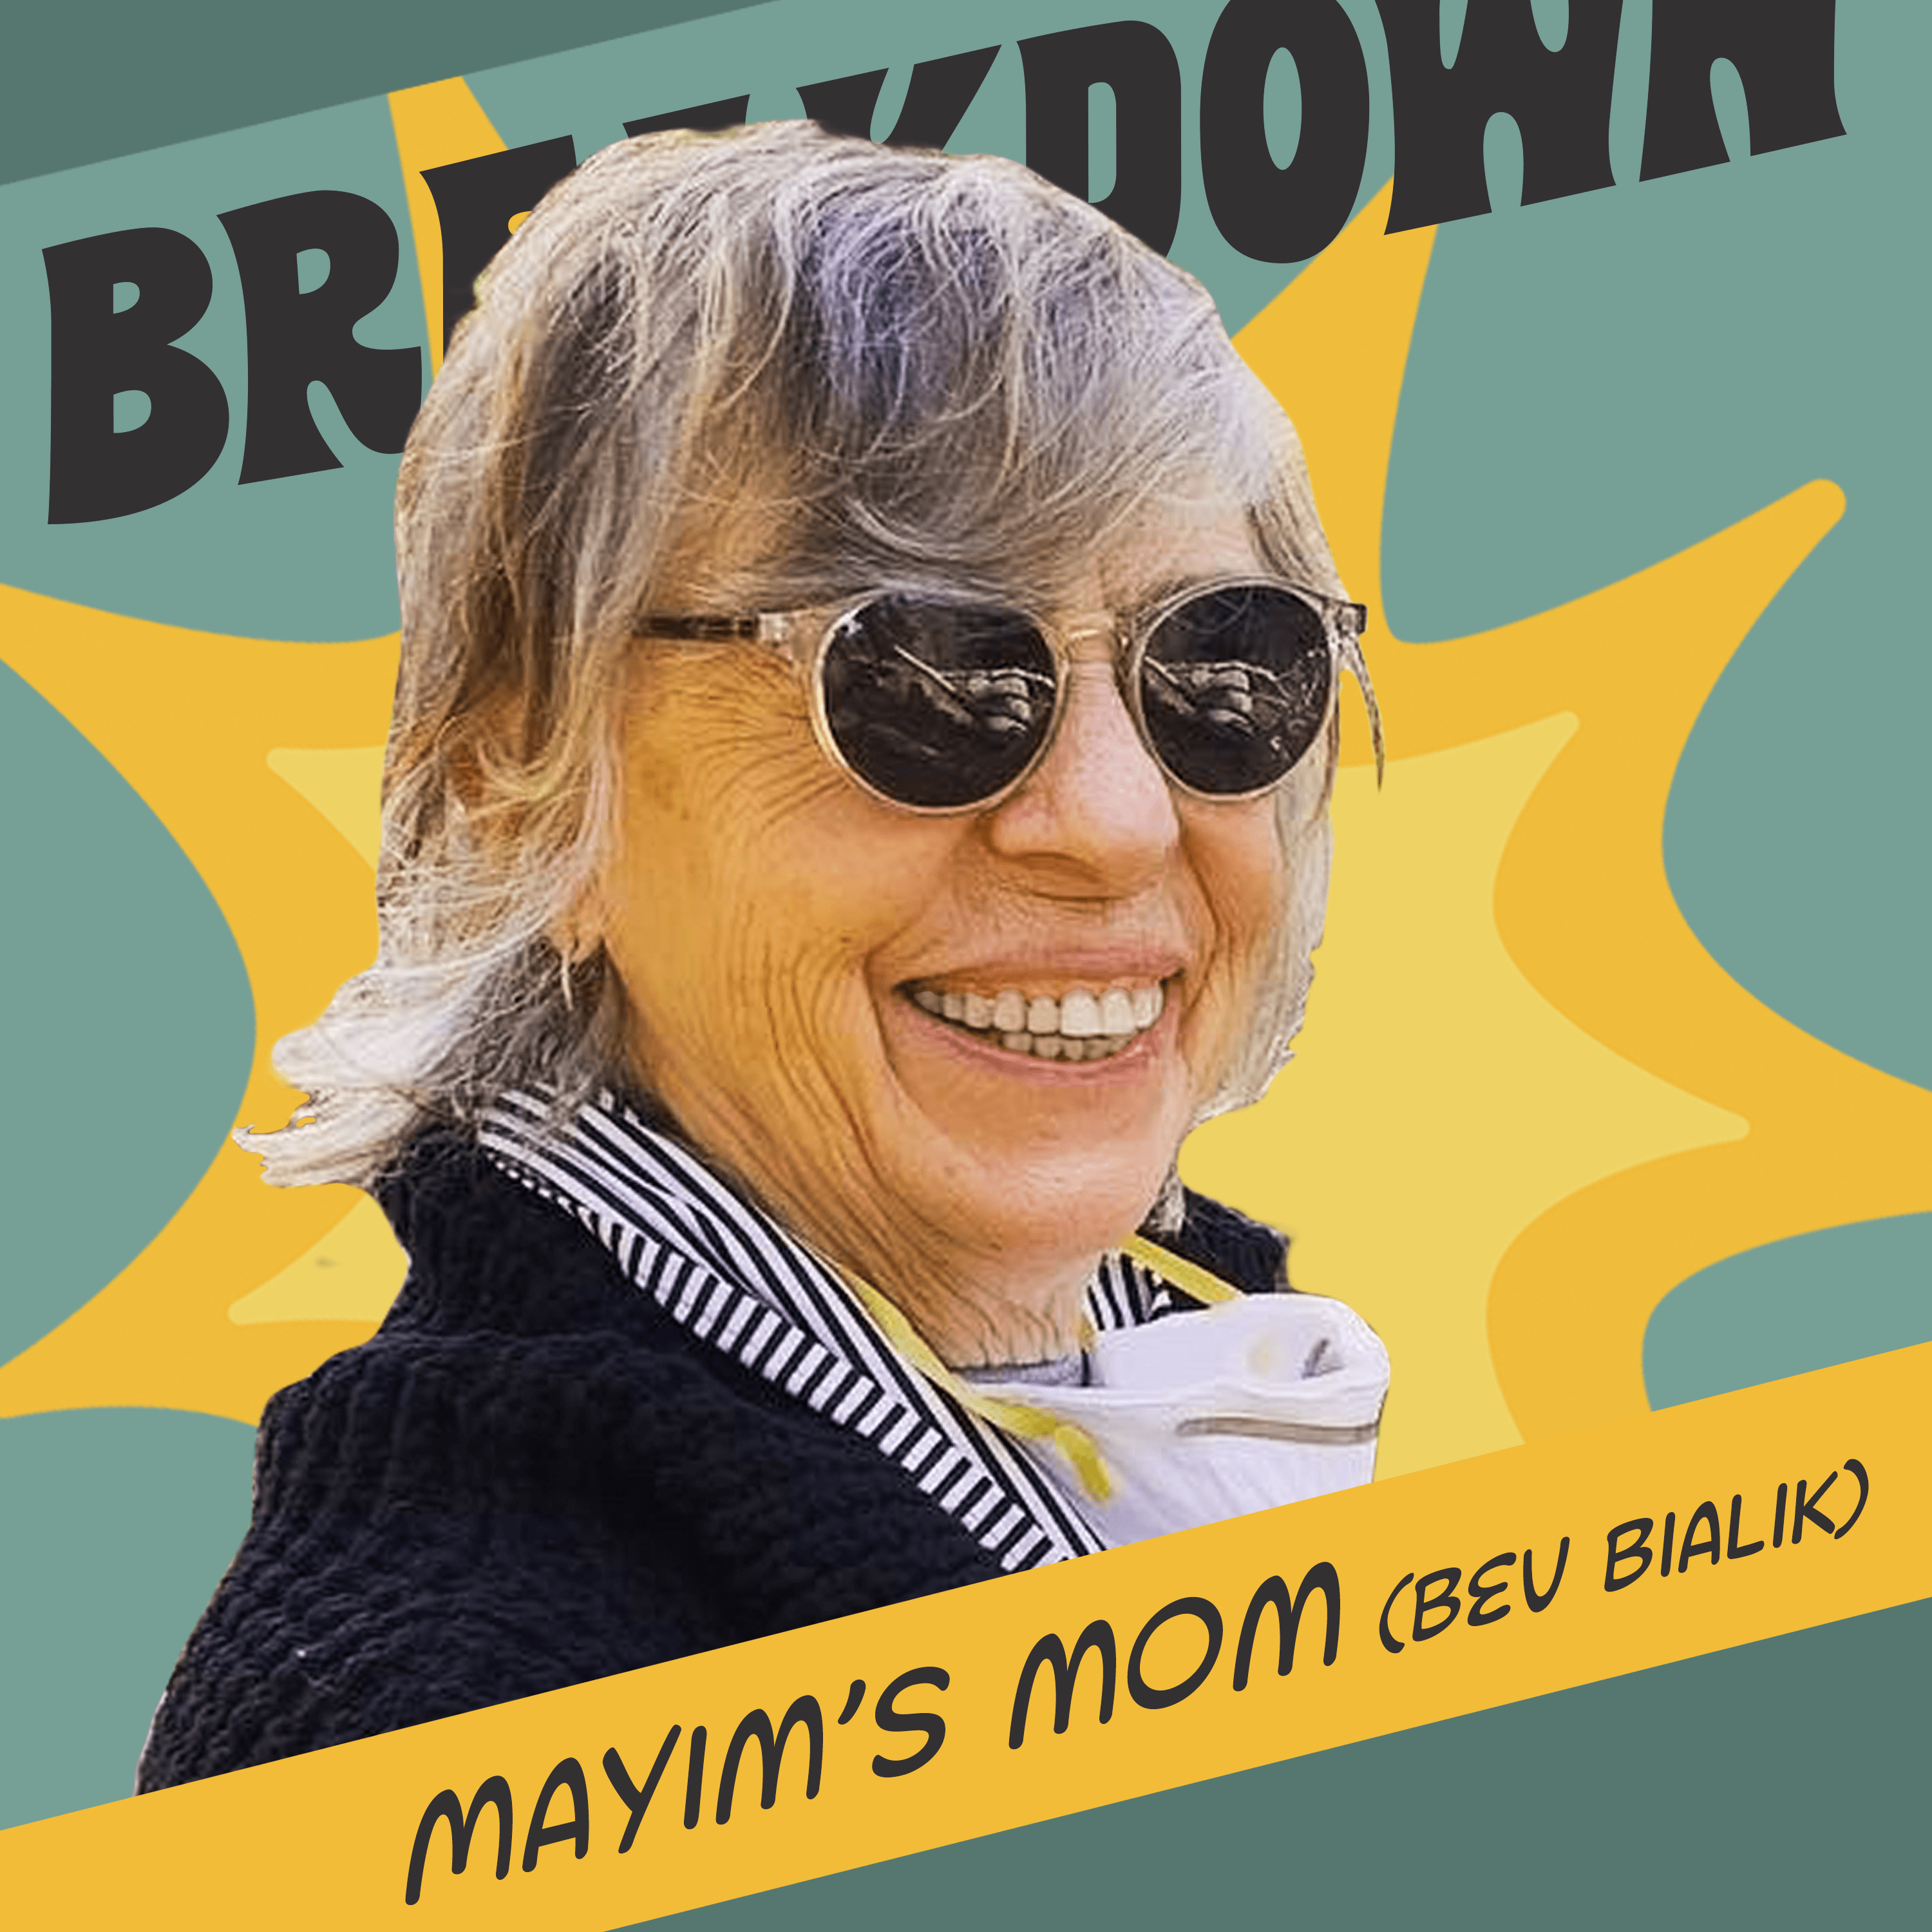 Bevisode with Mayim's Mom! Anxiety, Sexuality & Mind-Body Connection